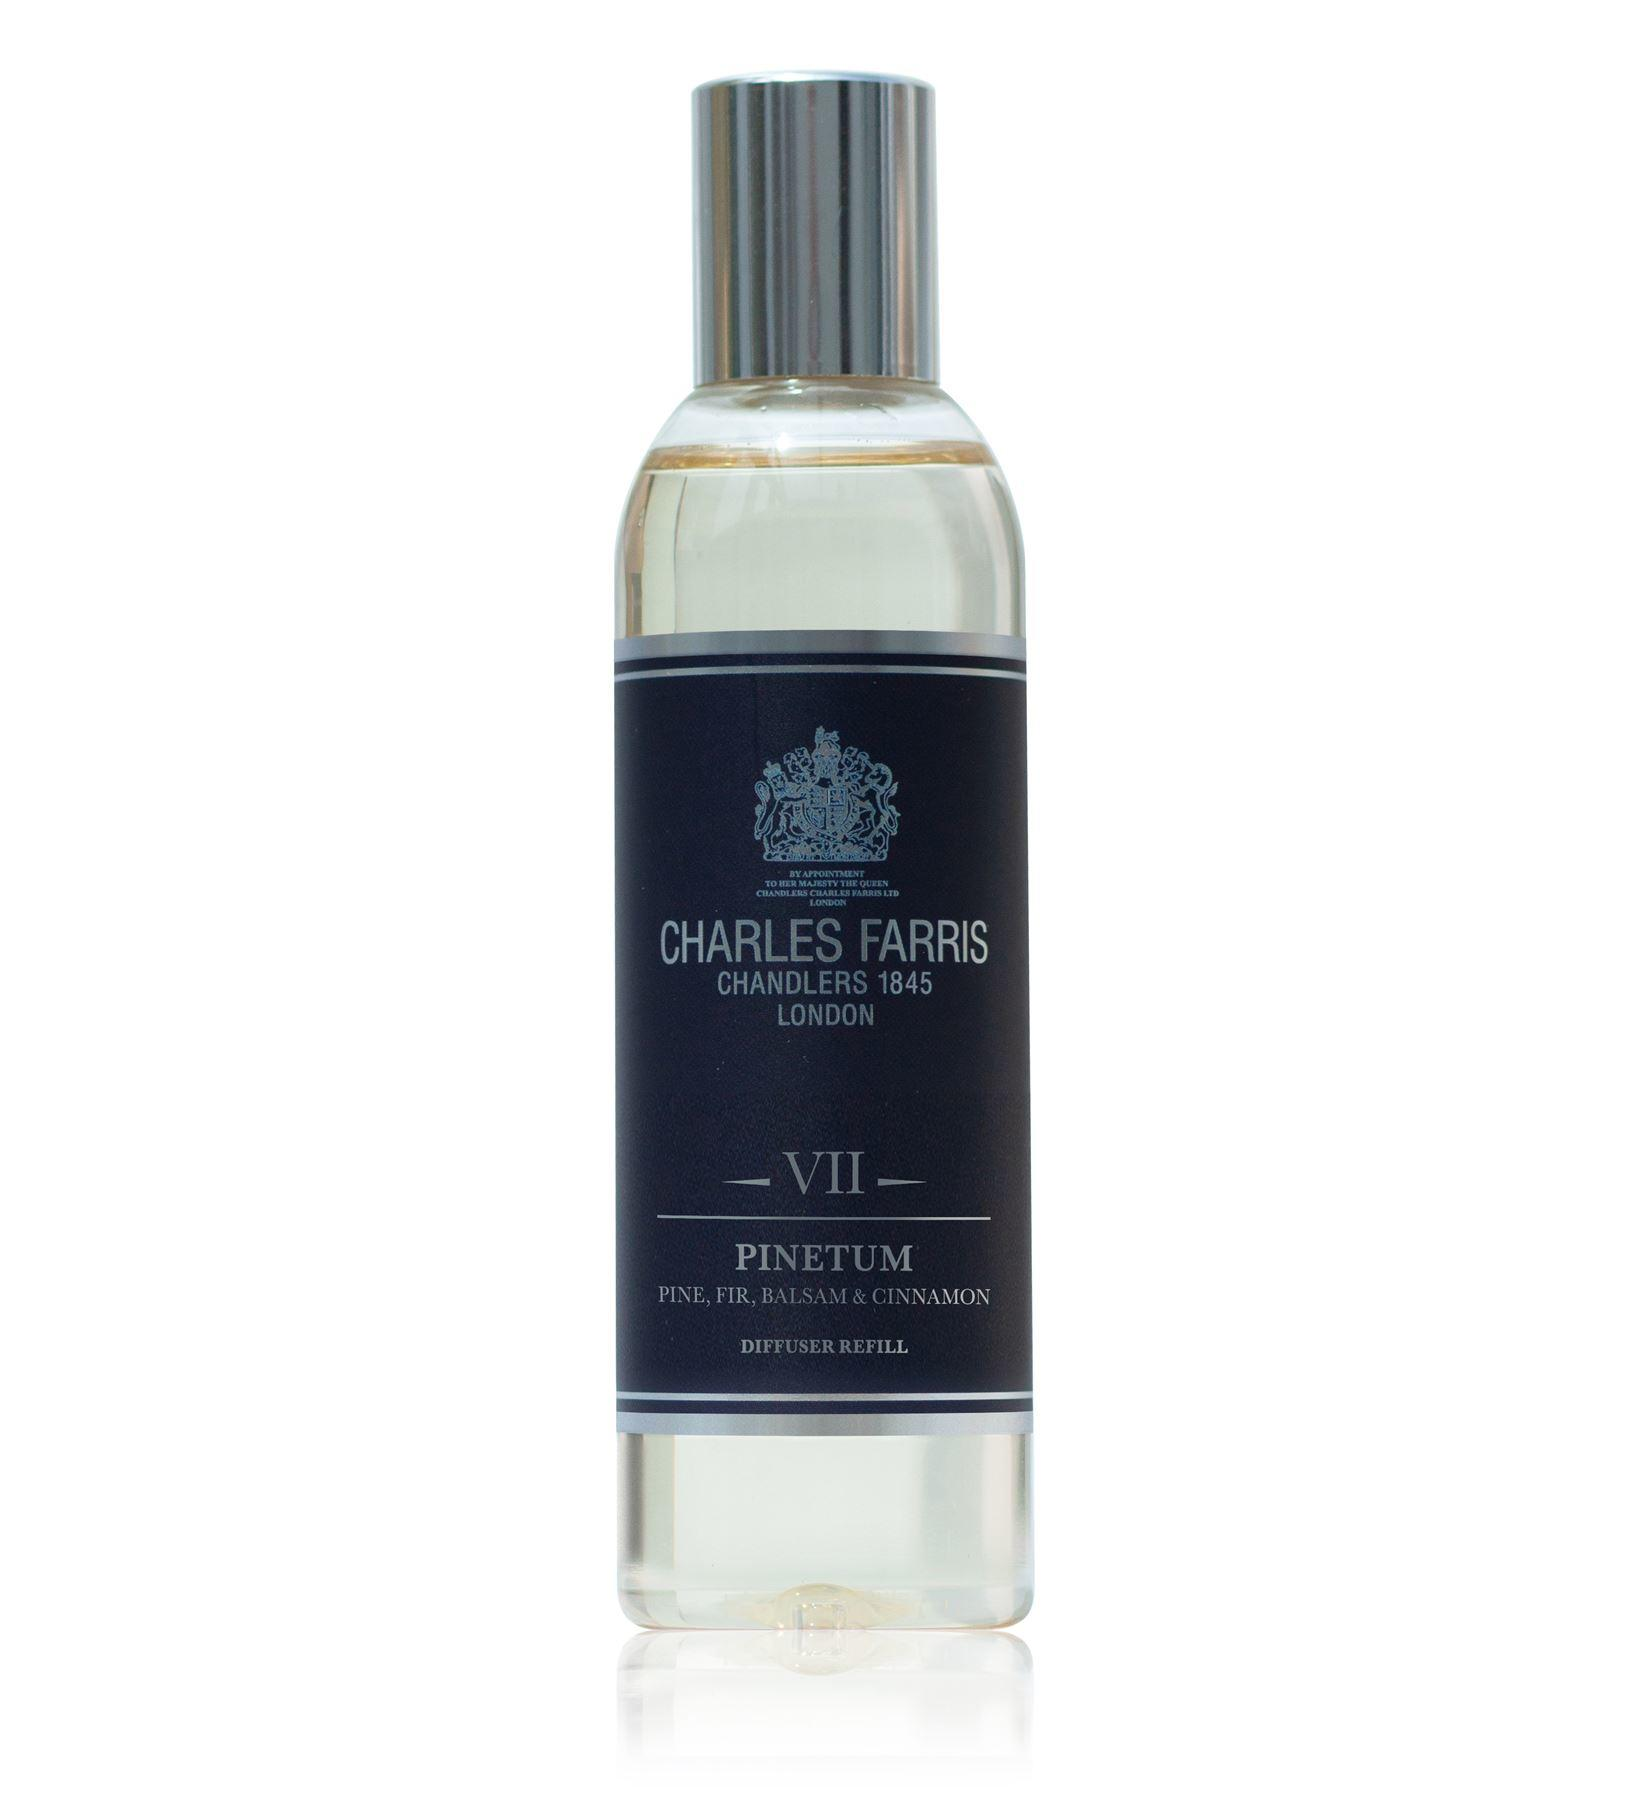 Charles Farris VII Pinetum Reed Diffuser Oil Refill